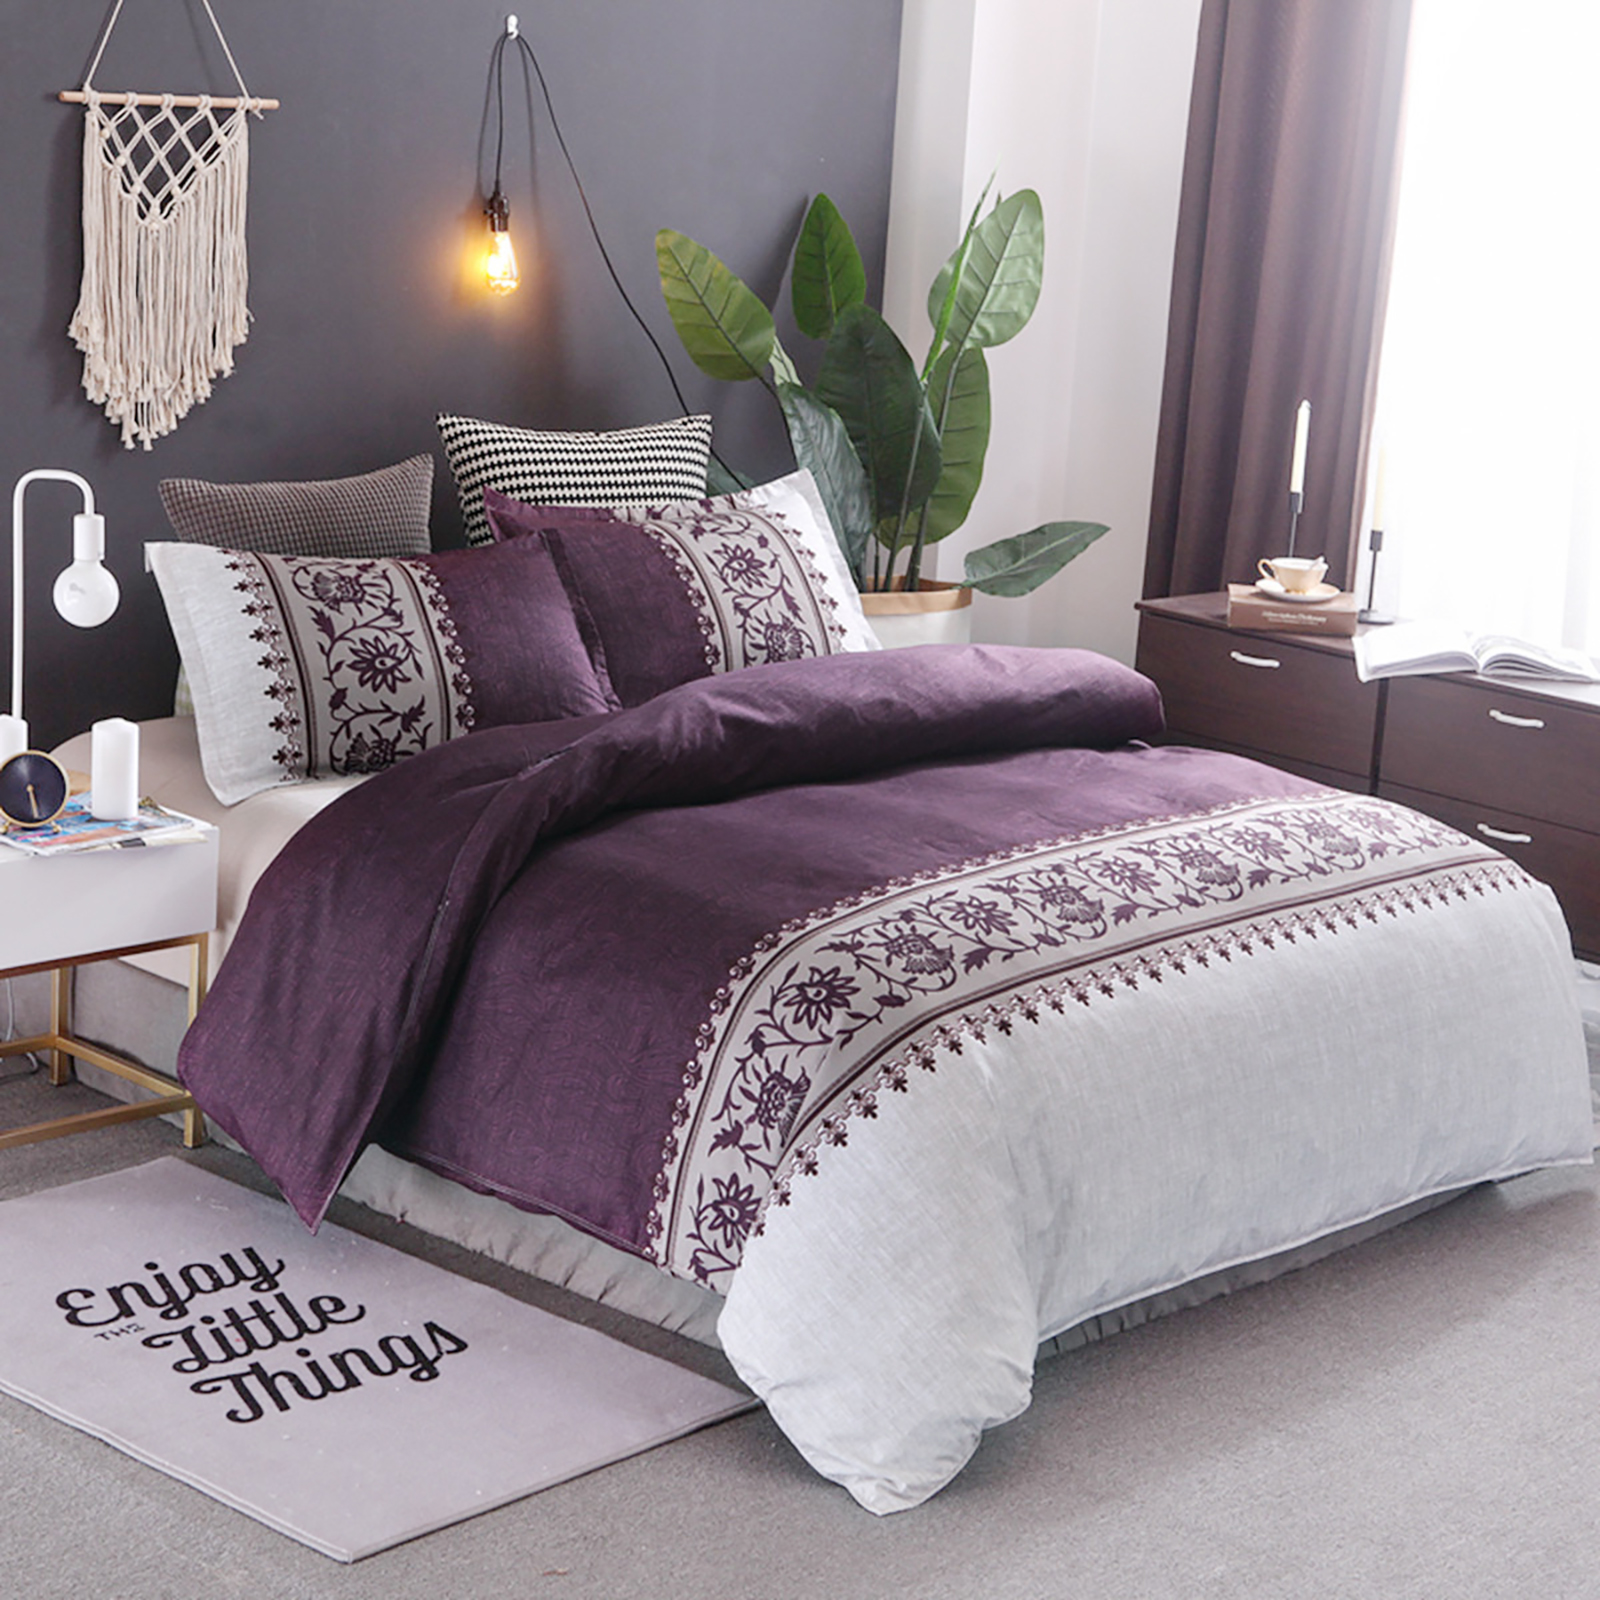 Wongs Bedding Purple Duvet Cover Single Modern Reversible Purple Beige Printed Quilt Cover With Zipper Closure Luxury Soft Microfiber Single Size135x200cm Amazon Co Uk Kitchen Home